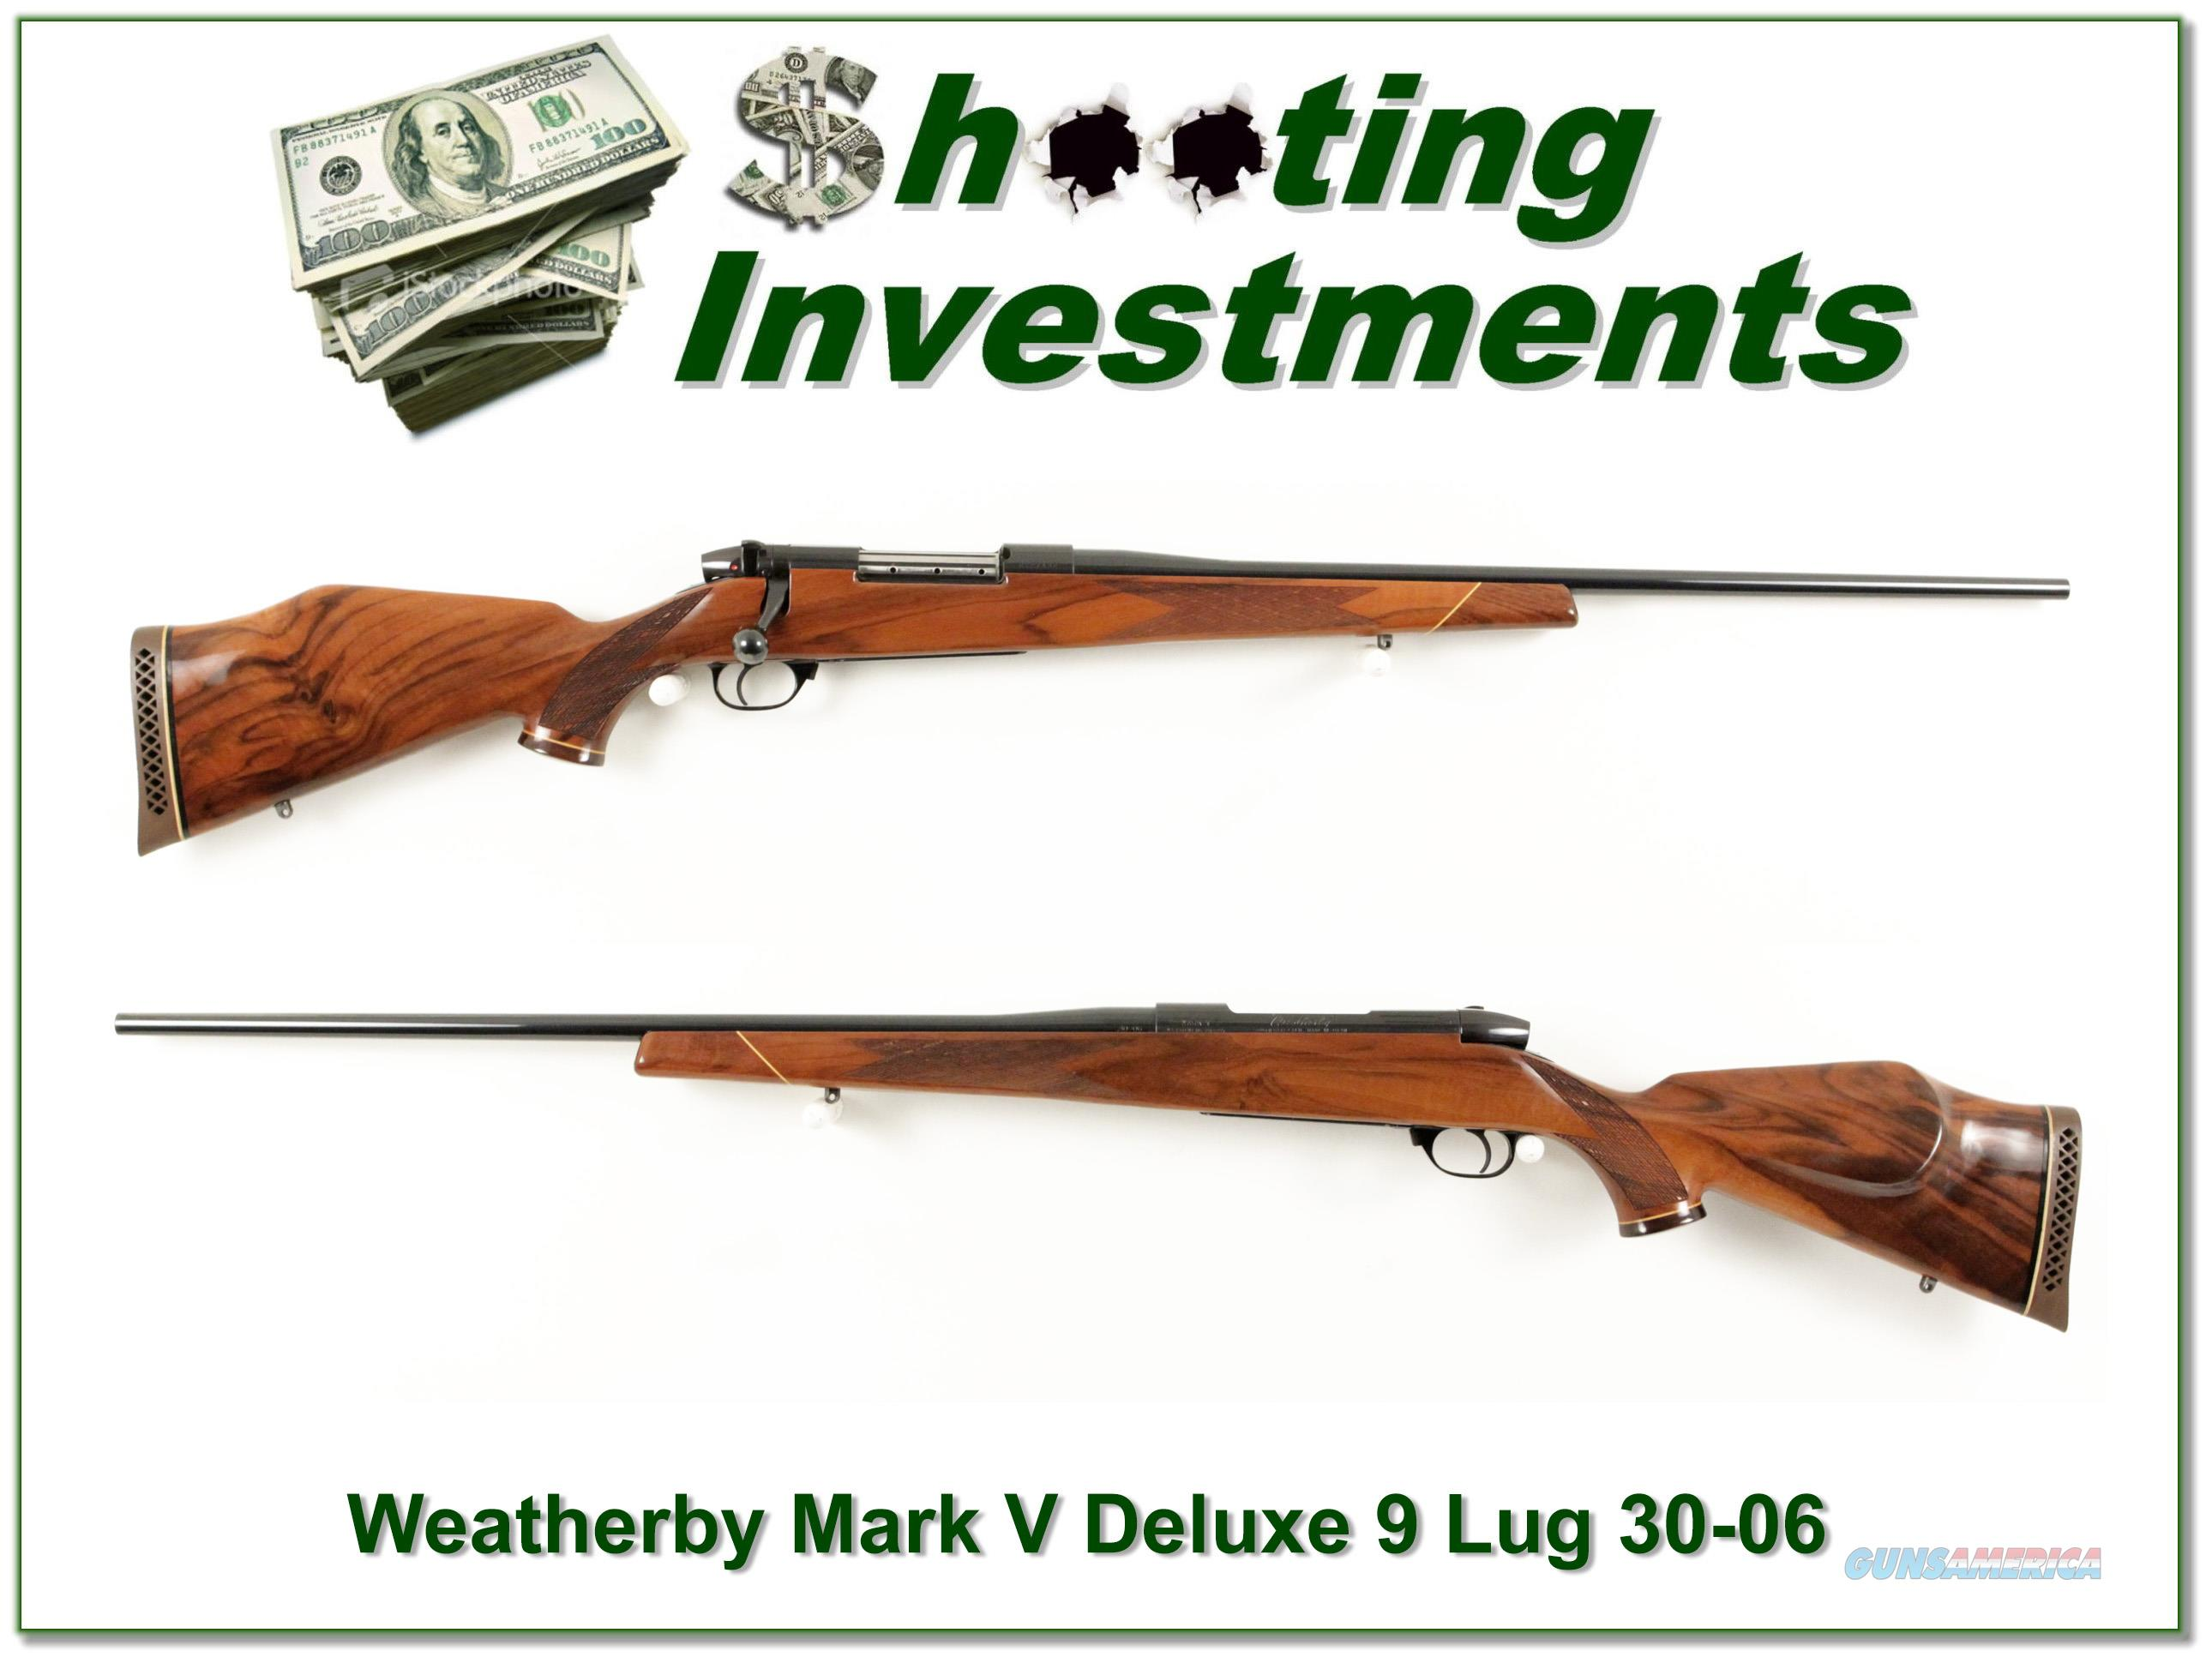 Weatherby Mark V Deluxe 30-06 9-Lug Exc!  Guns > Rifles > Weatherby Rifles > Sporting